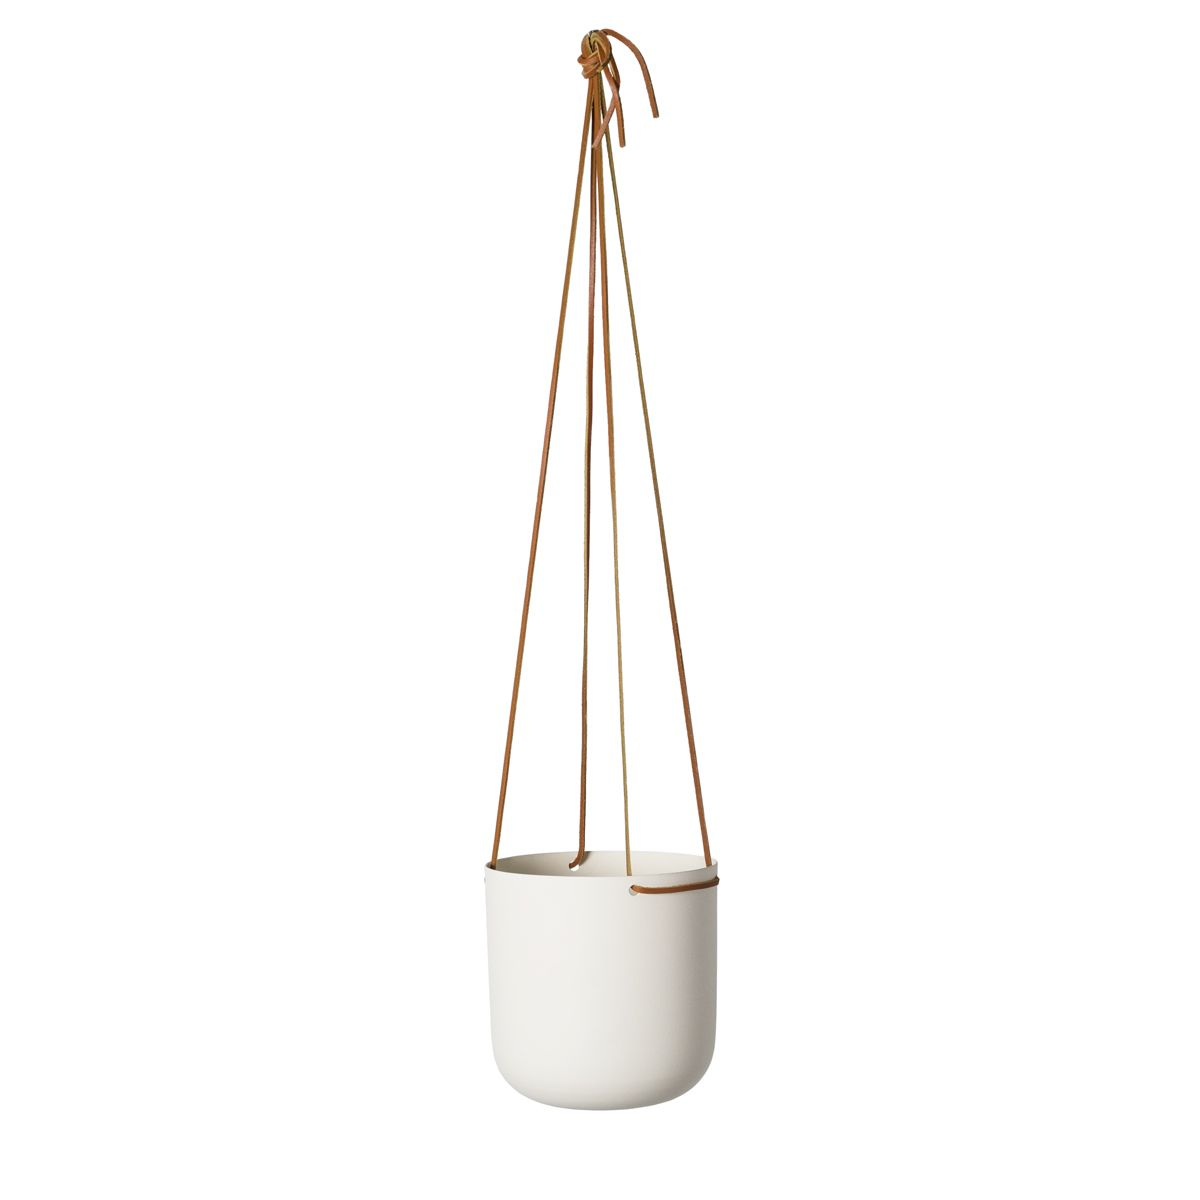 Hanging Planter In White Designed By Lightly Australia Hanging Planters Planters Hanging